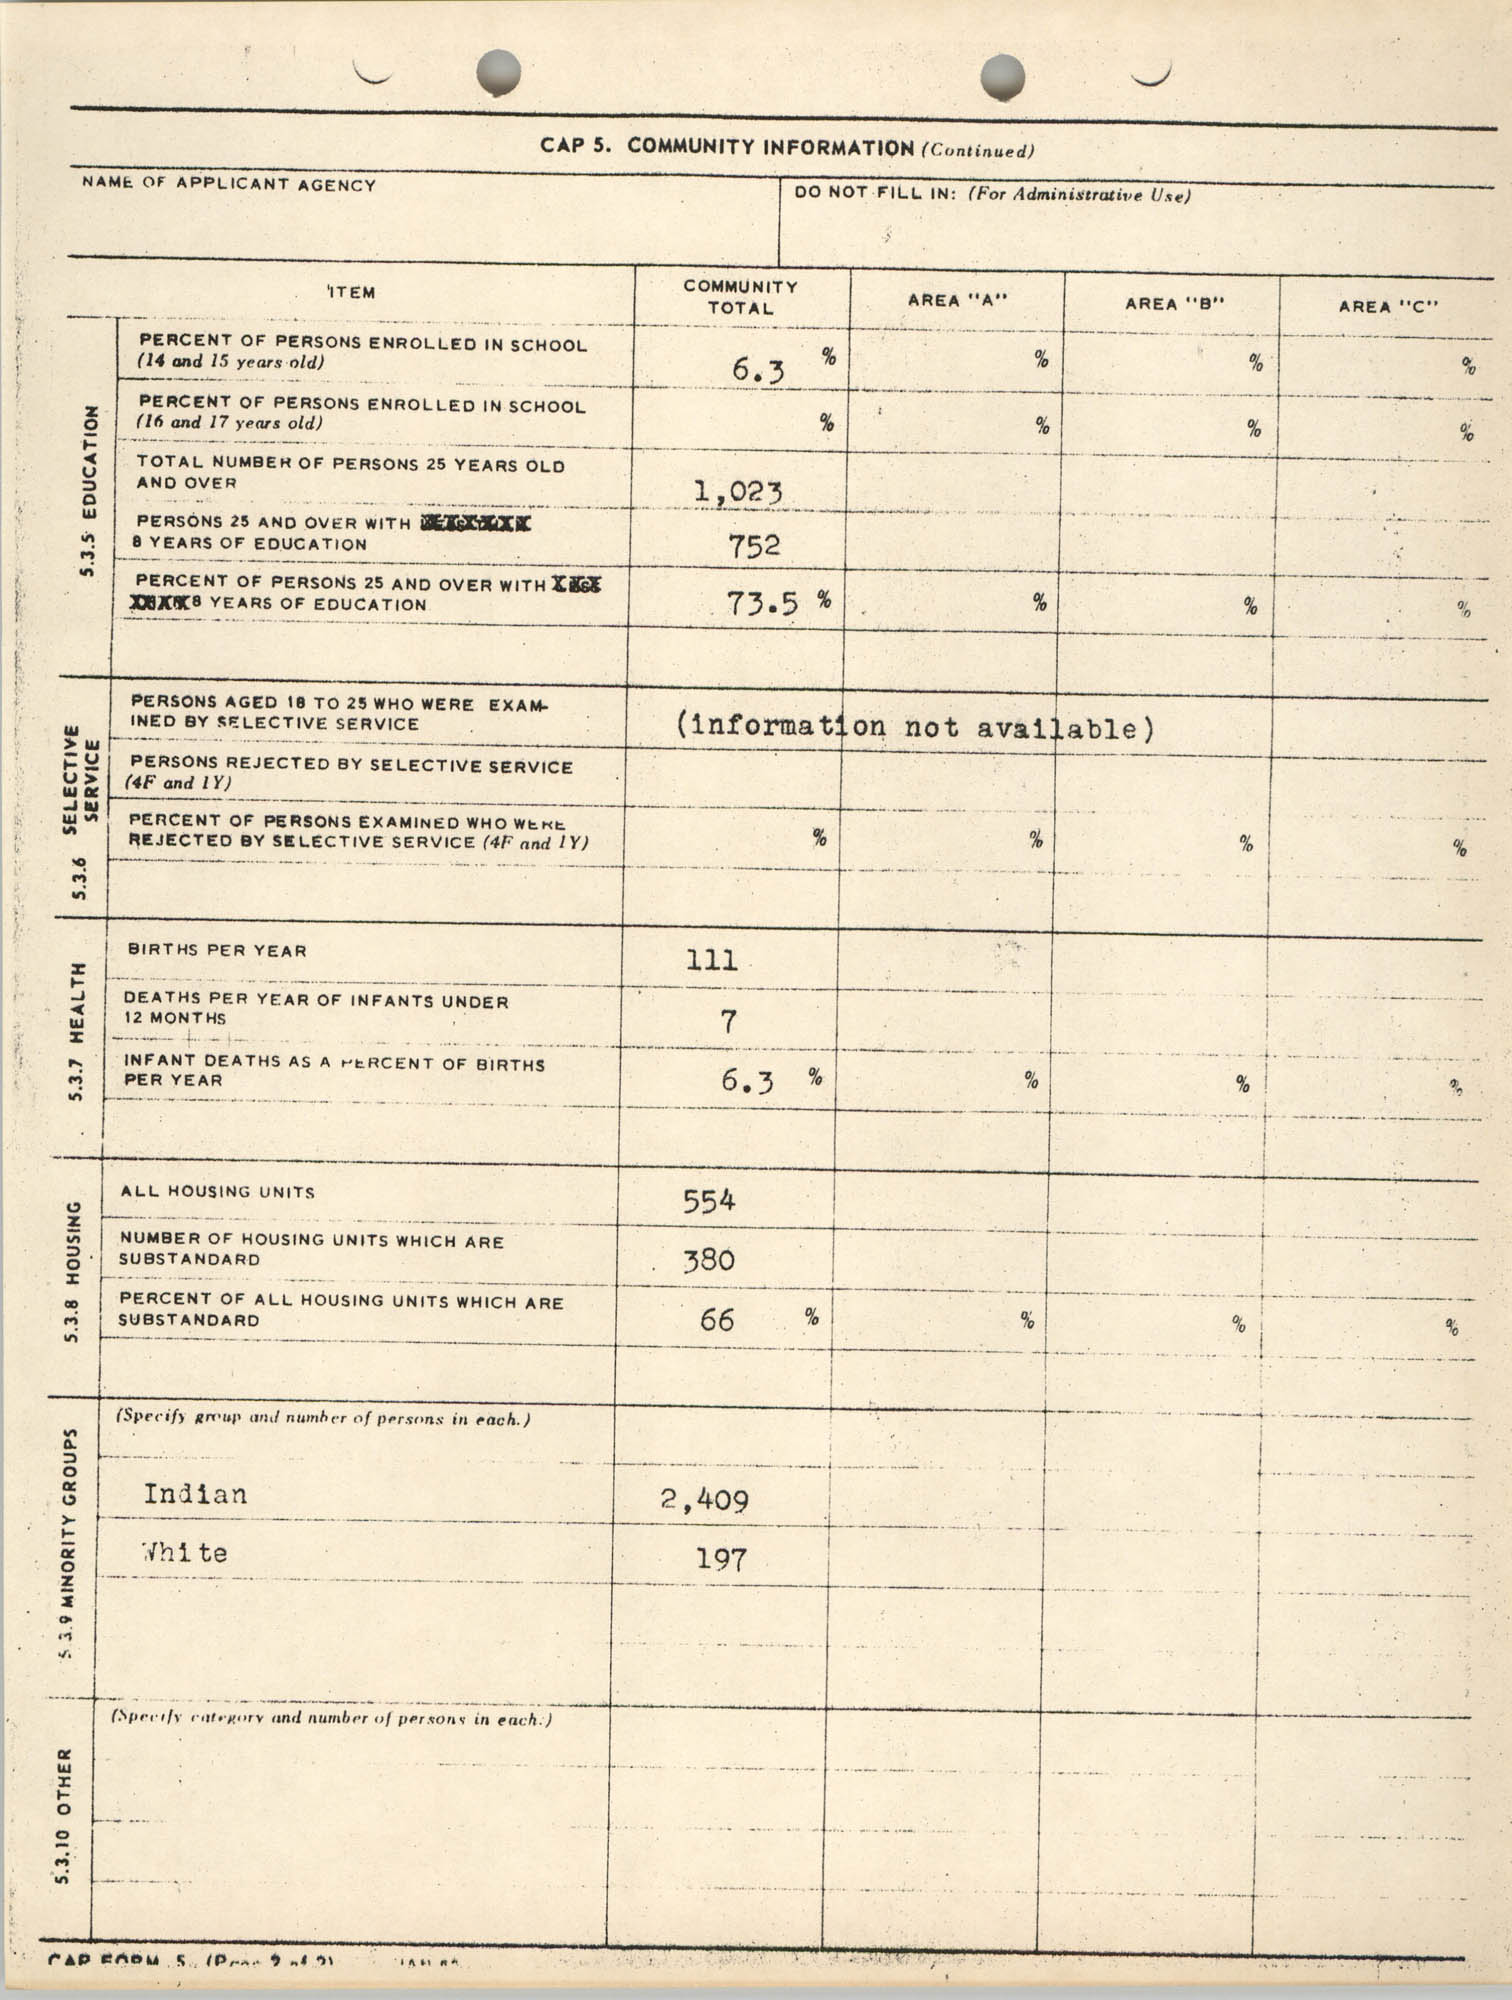 Application for CAP 5, Page 2